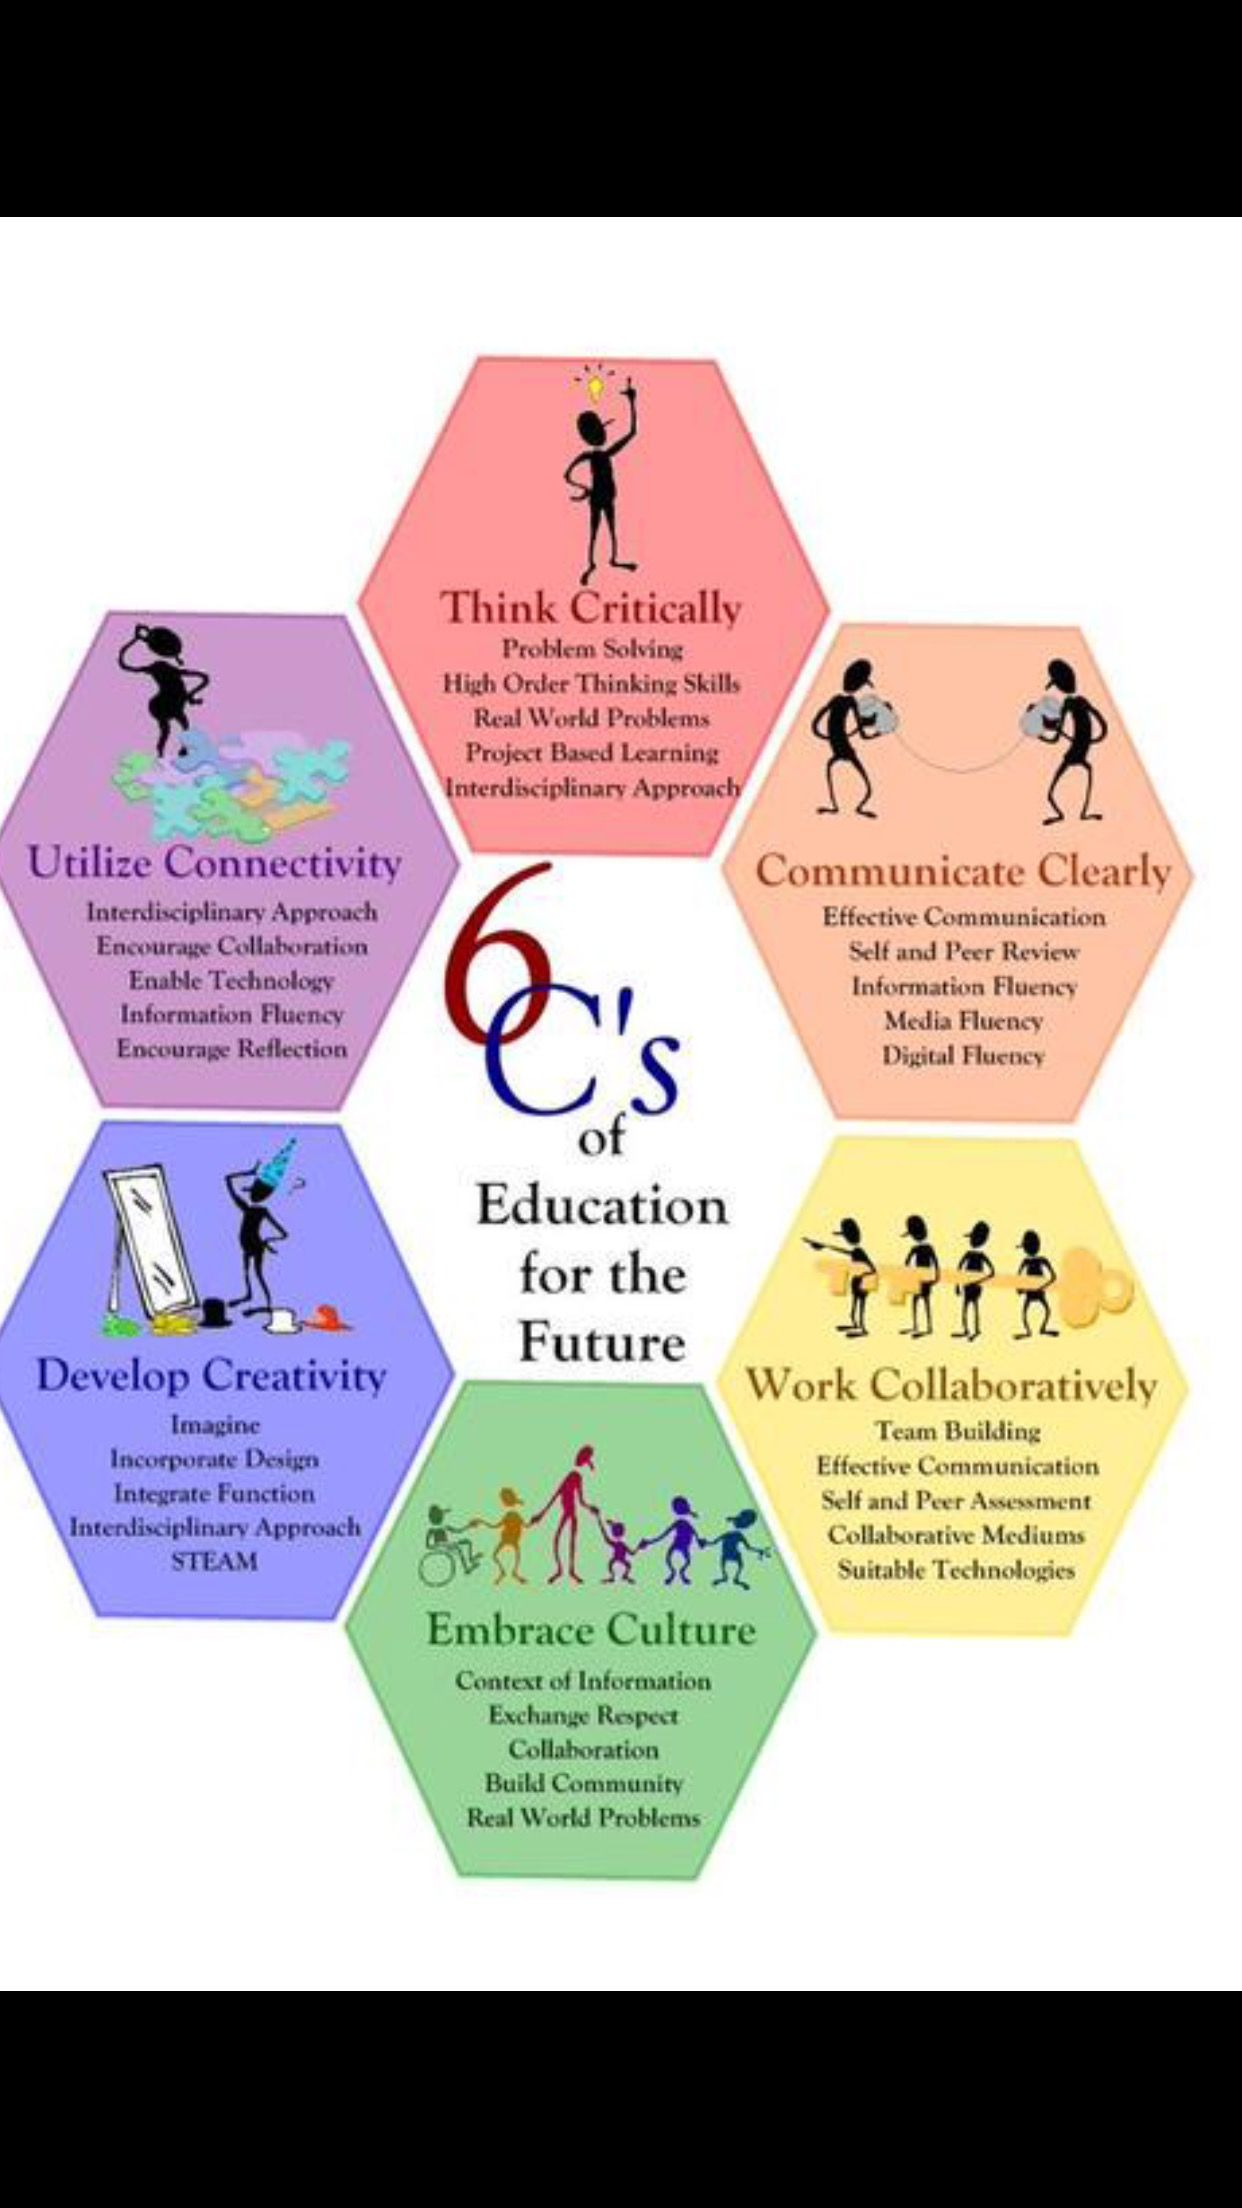 Pin By Toby Gordon On Professional Development Higher Order Thinking Skills Education Project Based Learning